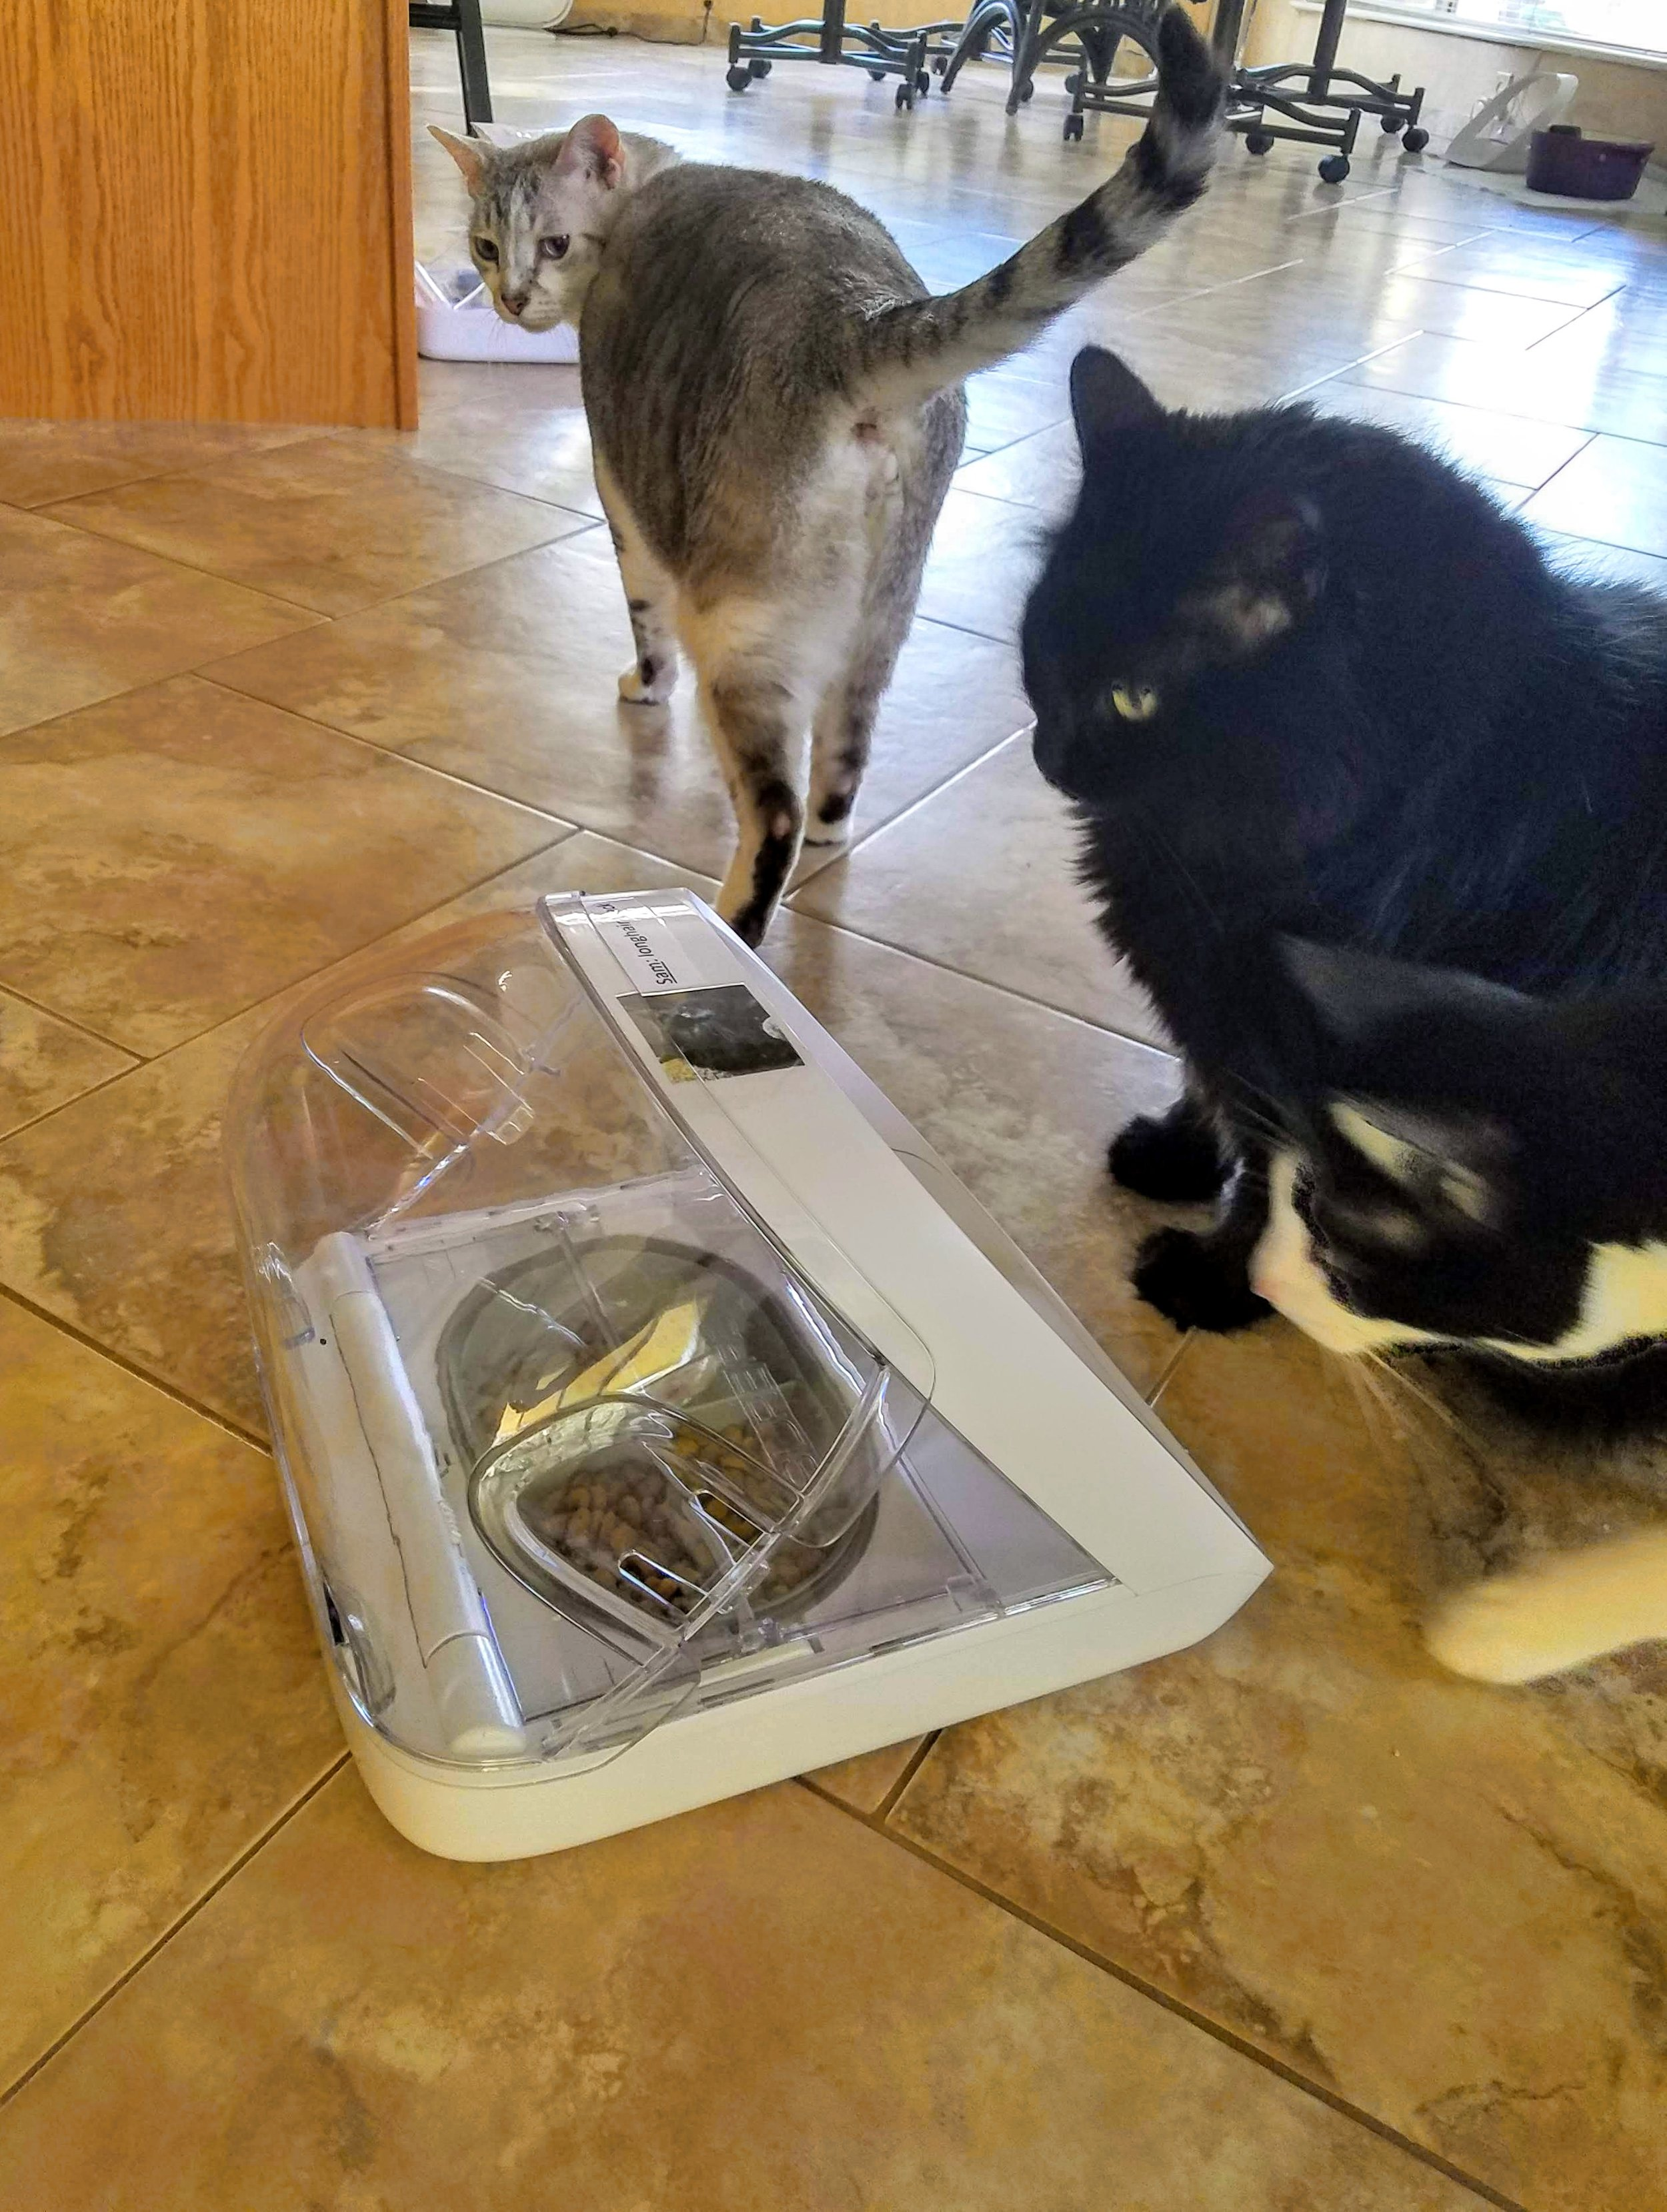 Frankie (top center) and Joey (far right) hoping to sample from Sam's domed feeder.